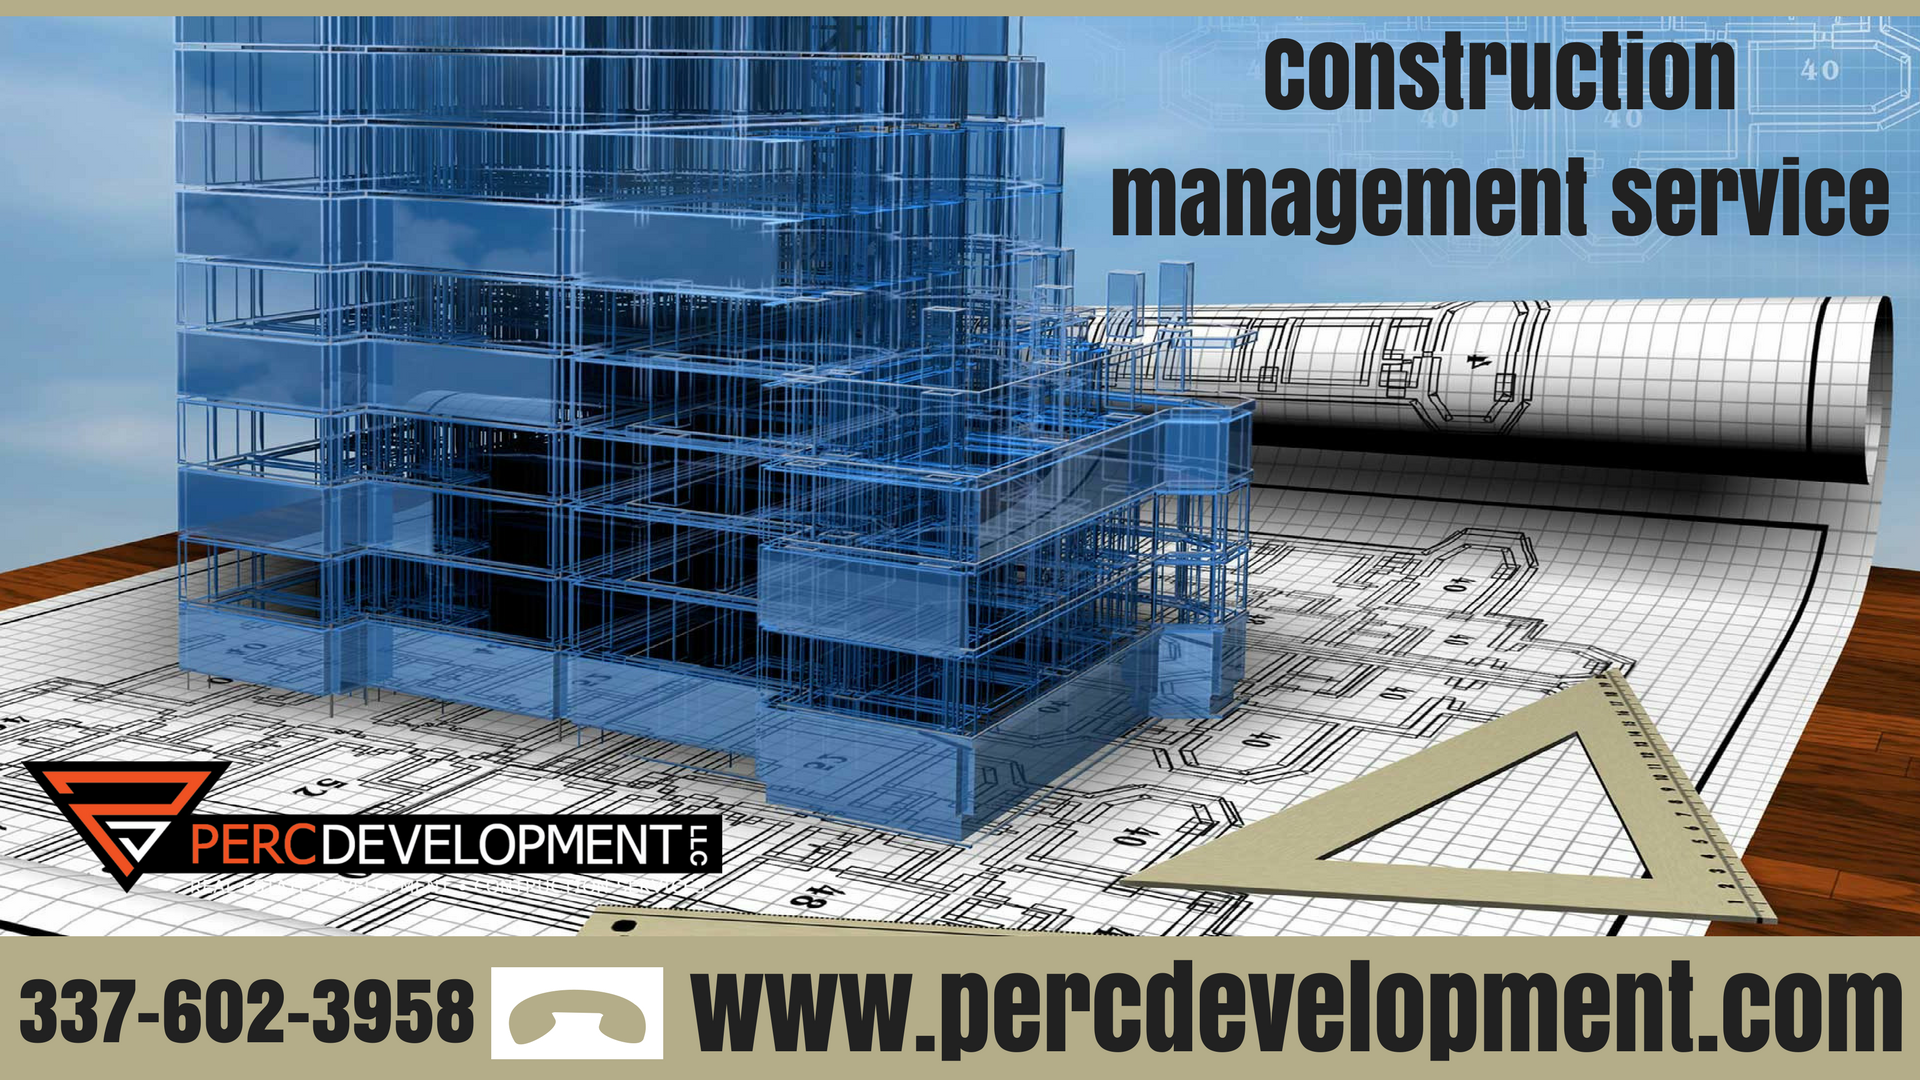 Professional Construction Management Service in Lake